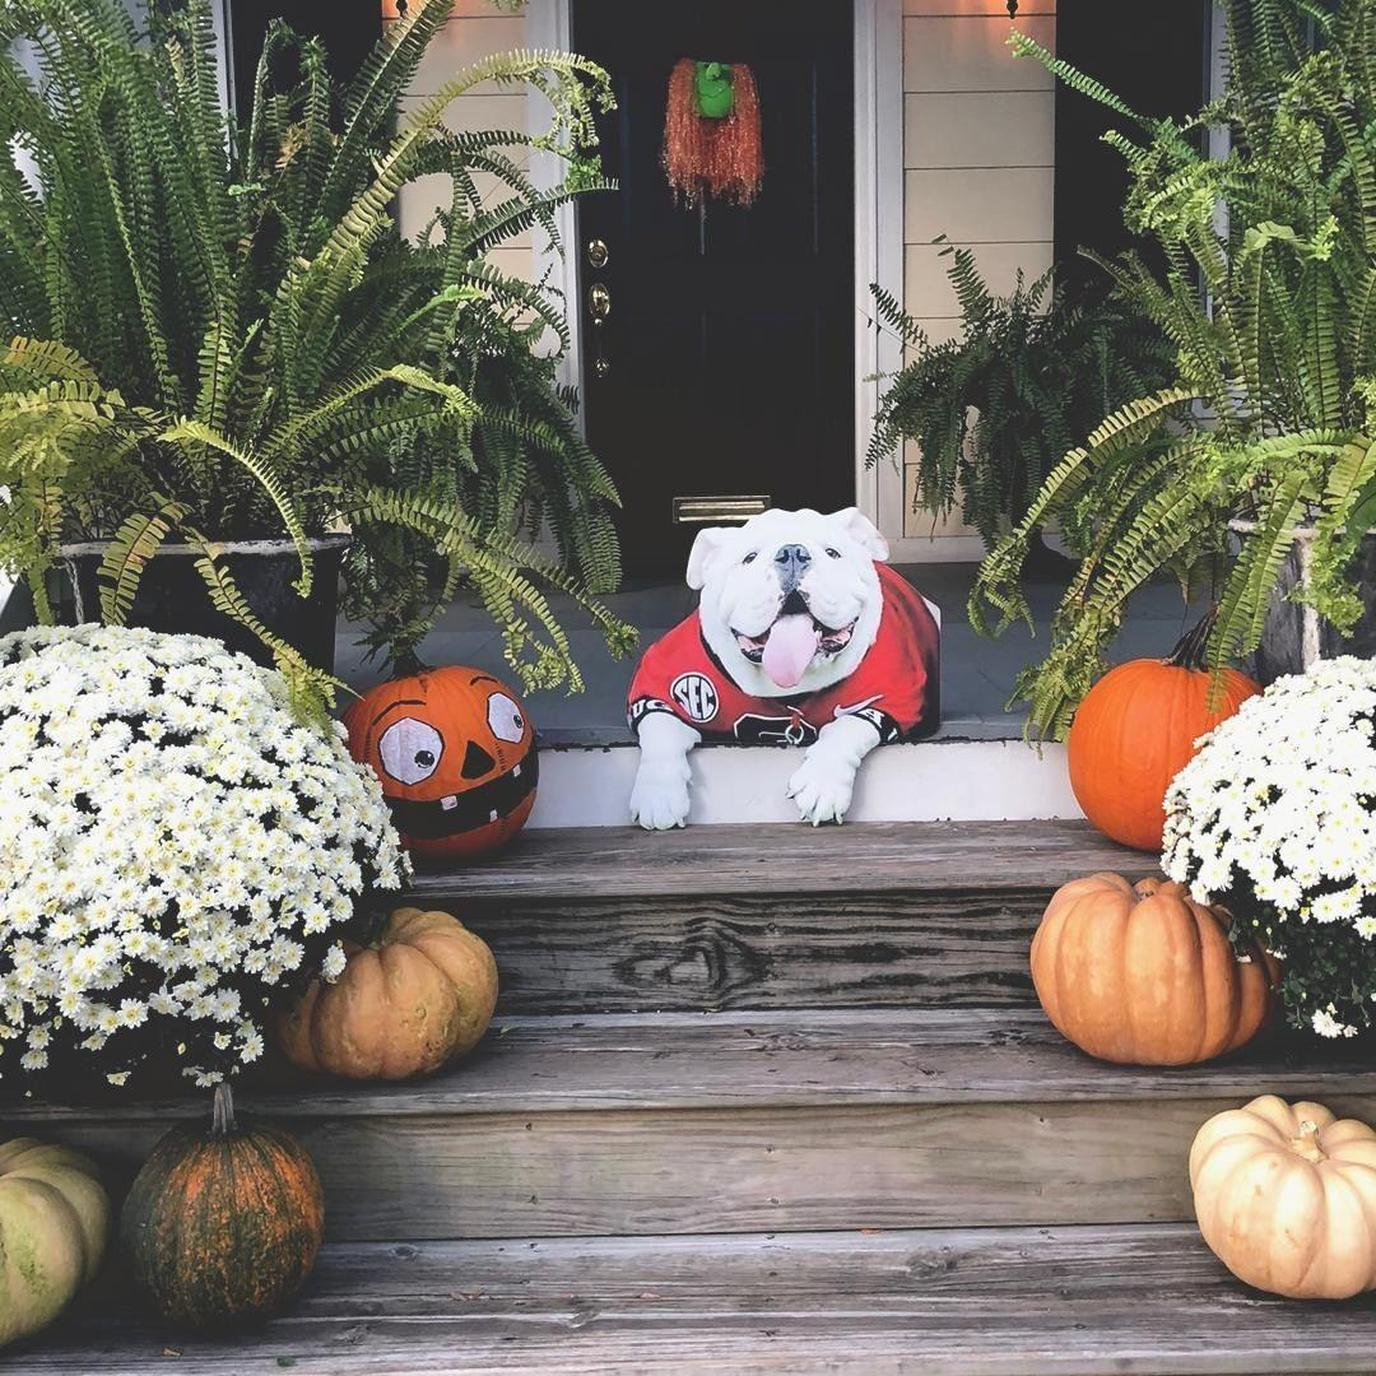 Fall is the perfect time of year to capture some new festive photos of your dog.